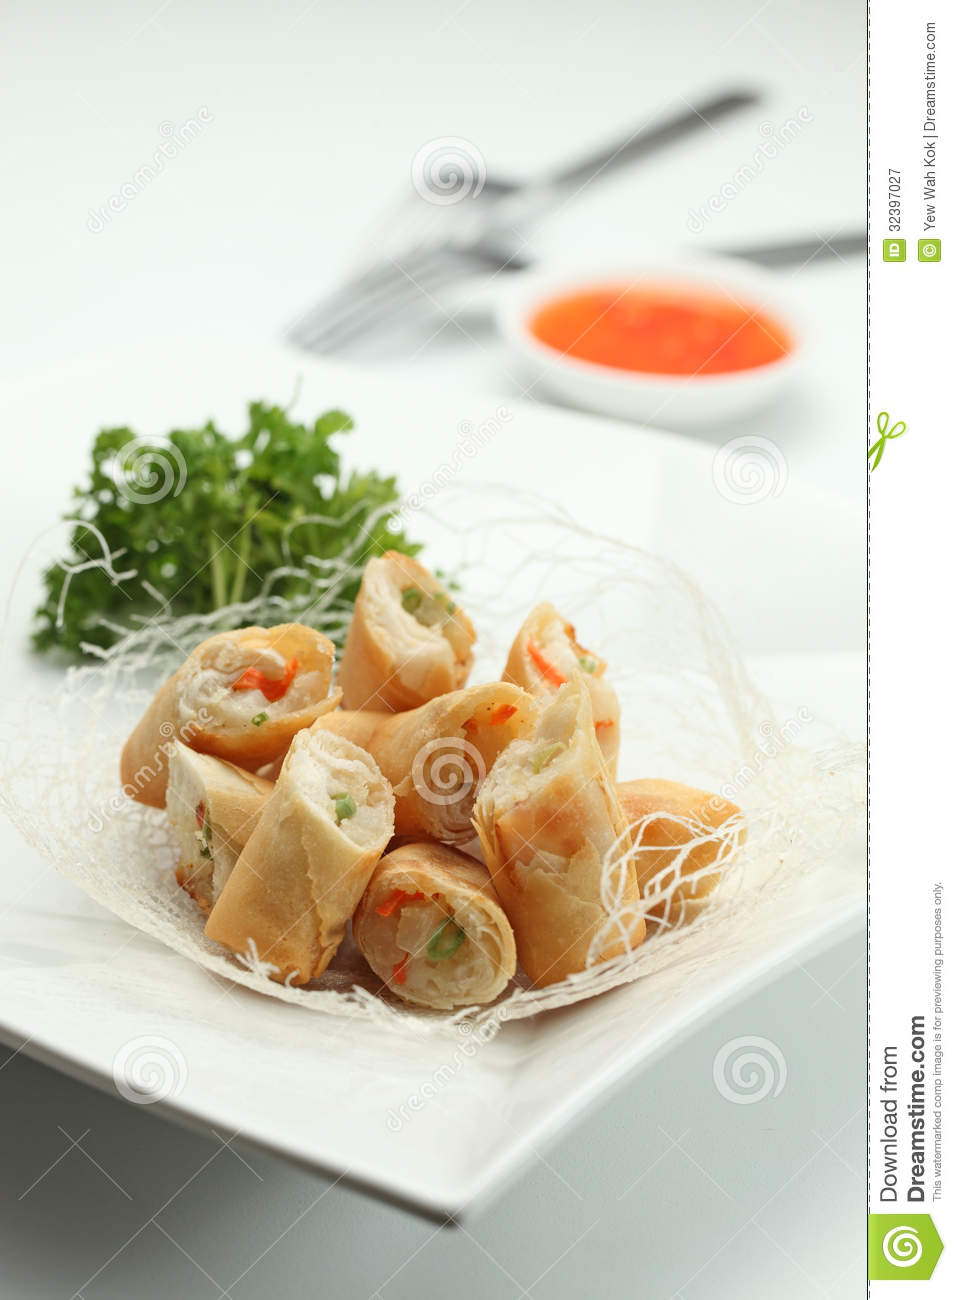 free clipart spring rolls - photo #31